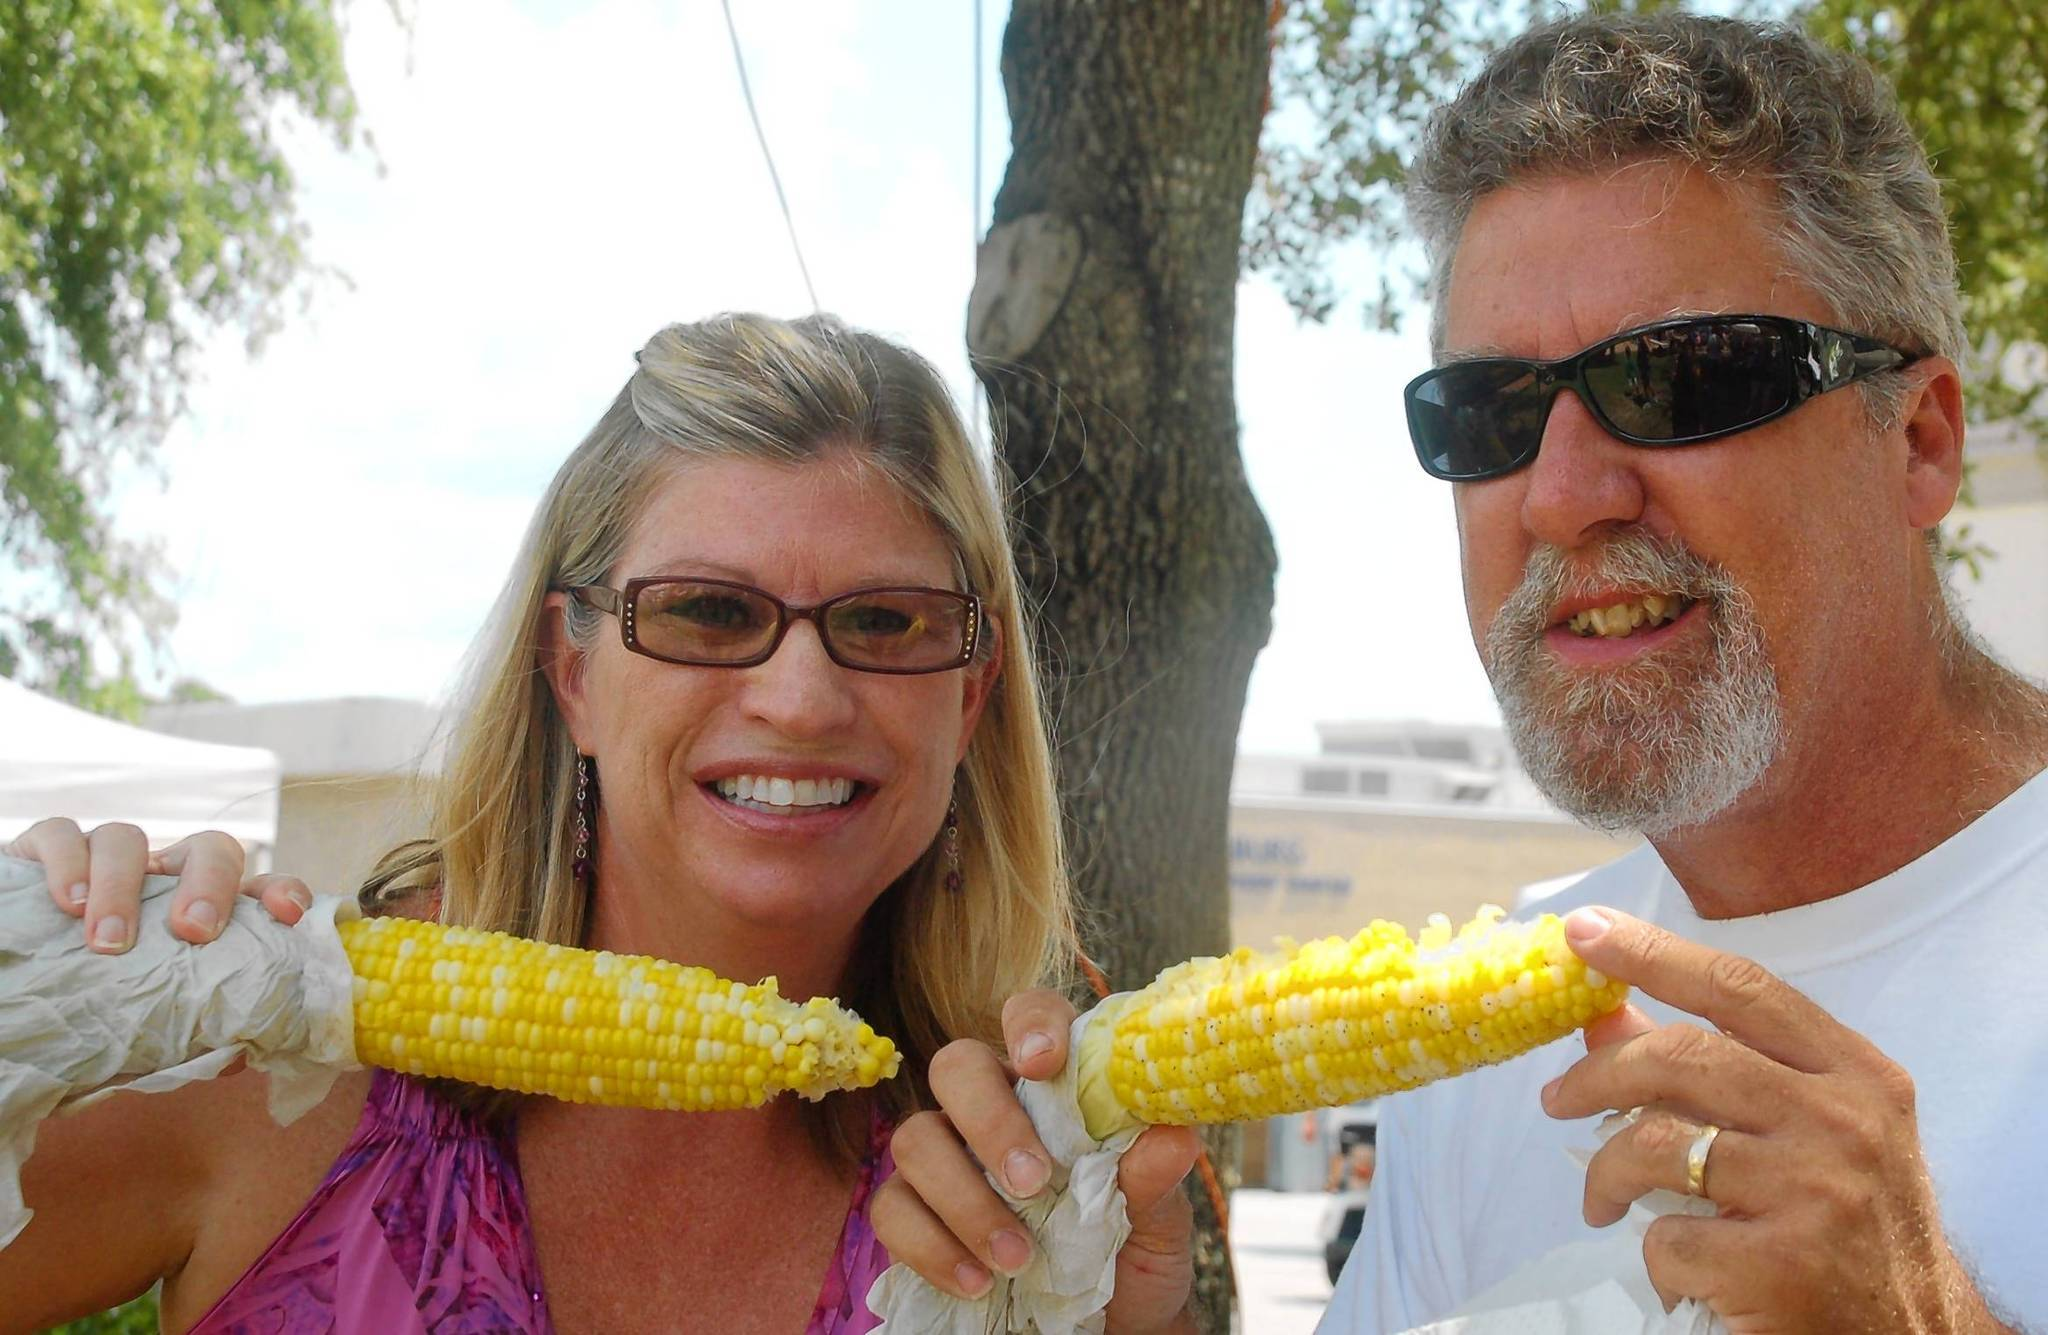 Vivian and David Ritter enjoy corn at last year's Leesburg Cornfest.